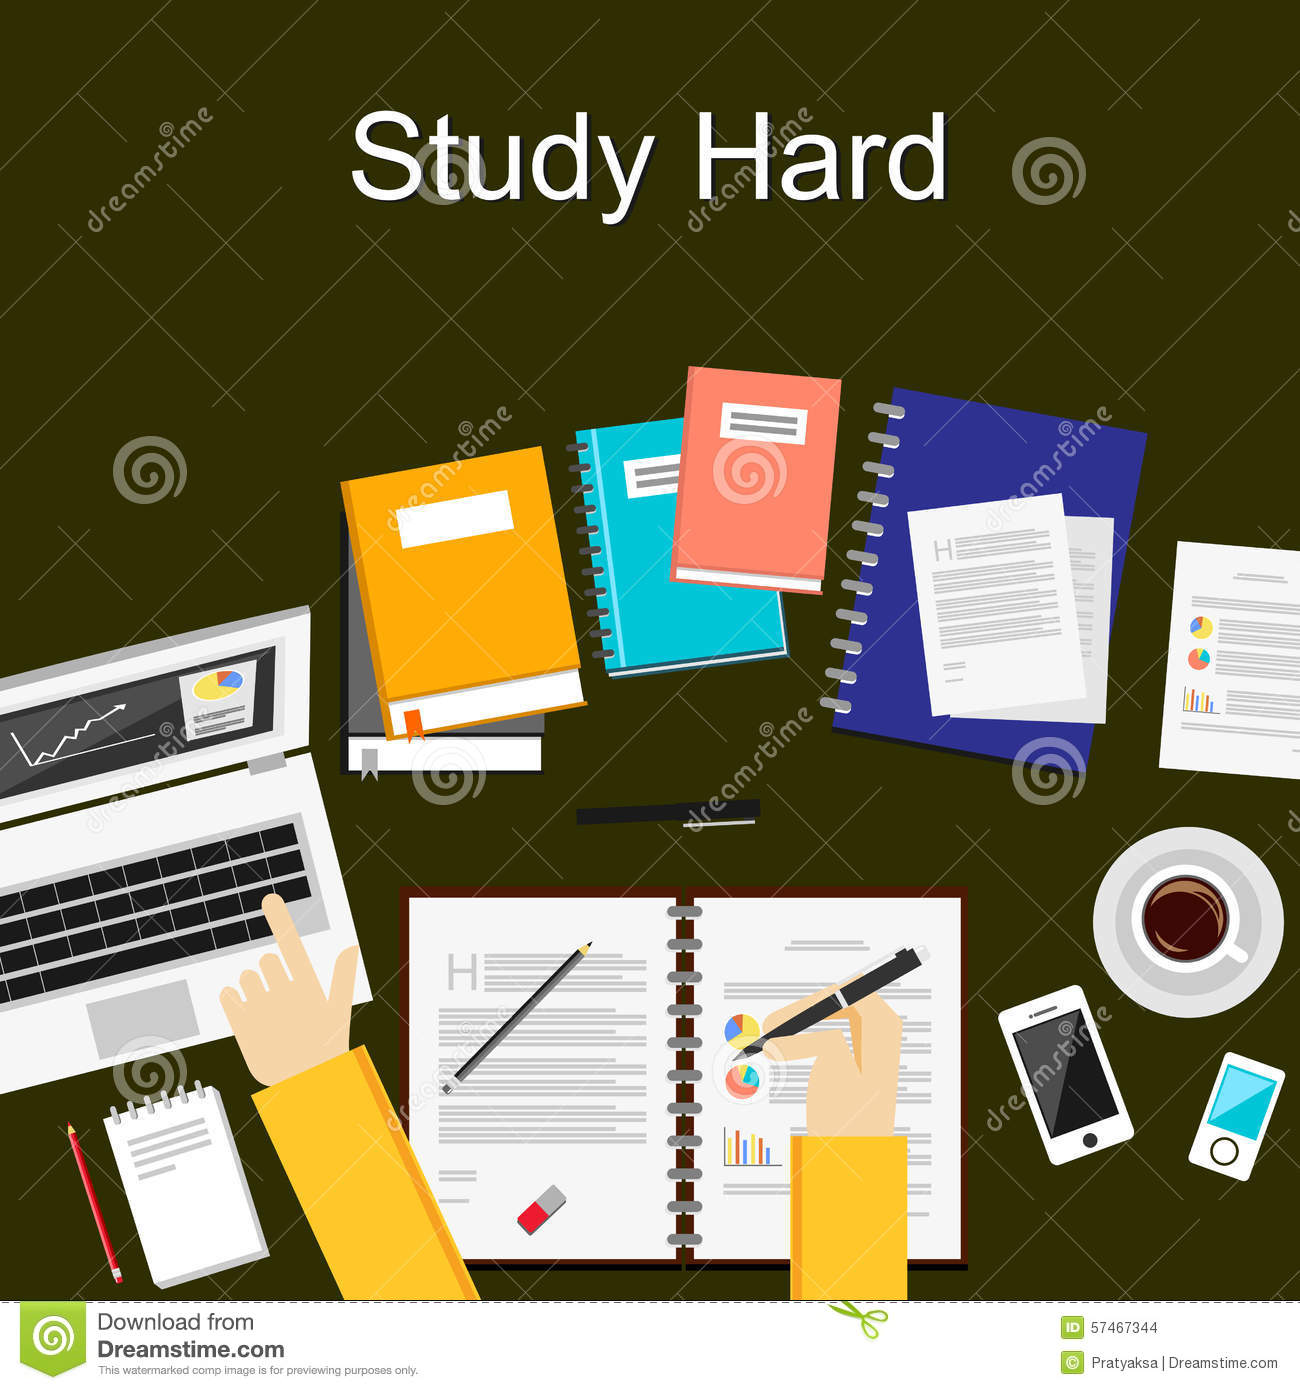 flat design illustration concepts for study hard working flat design illustration concepts for study hard working research analysis management